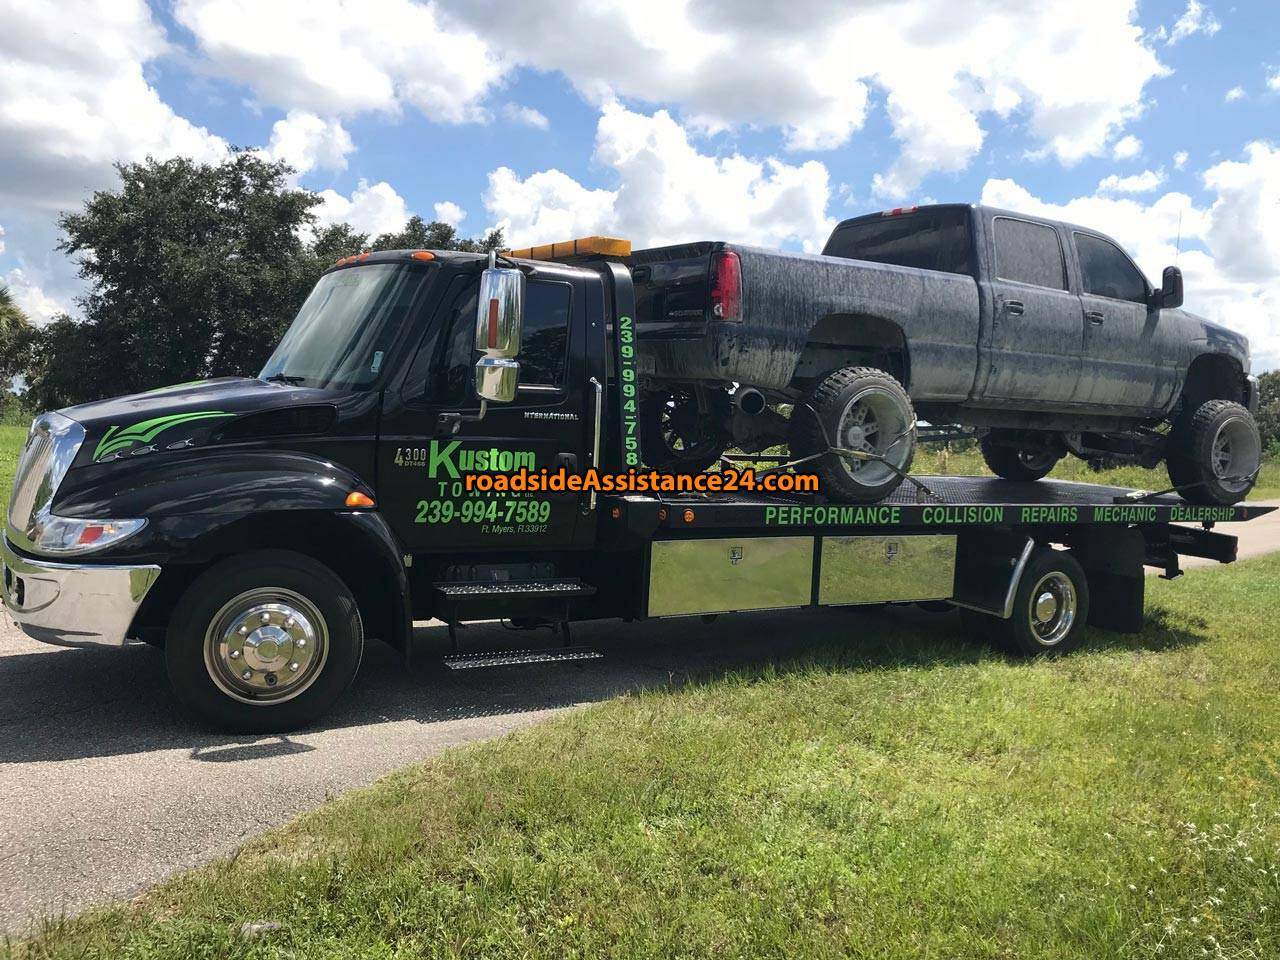 Kustom Towing & Transport LLC